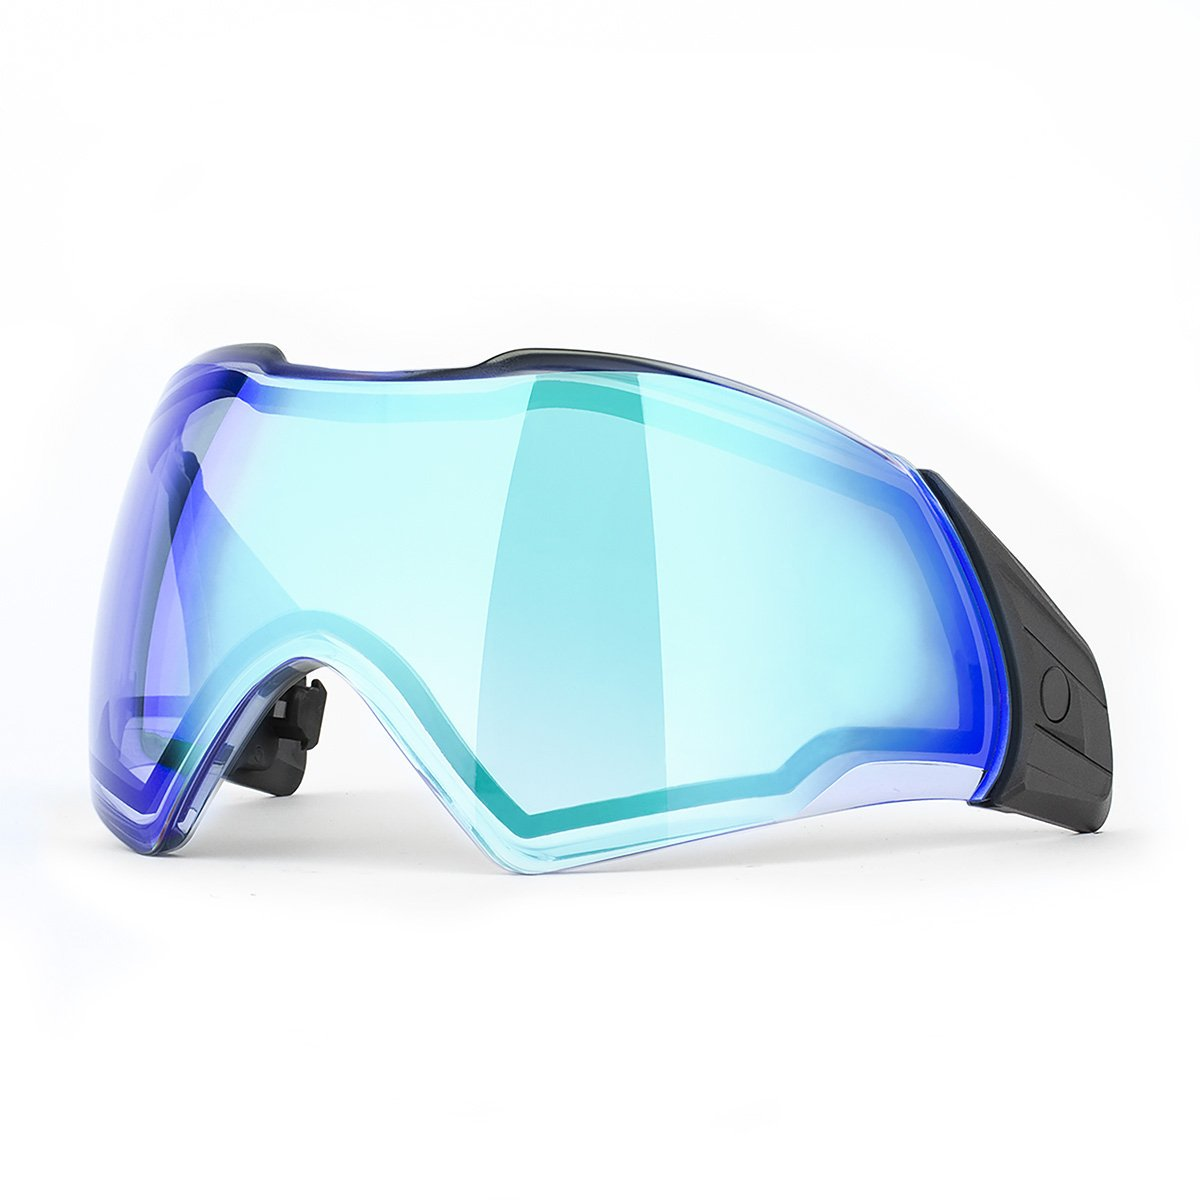 PUSH Unite Lens - Chrome Blue